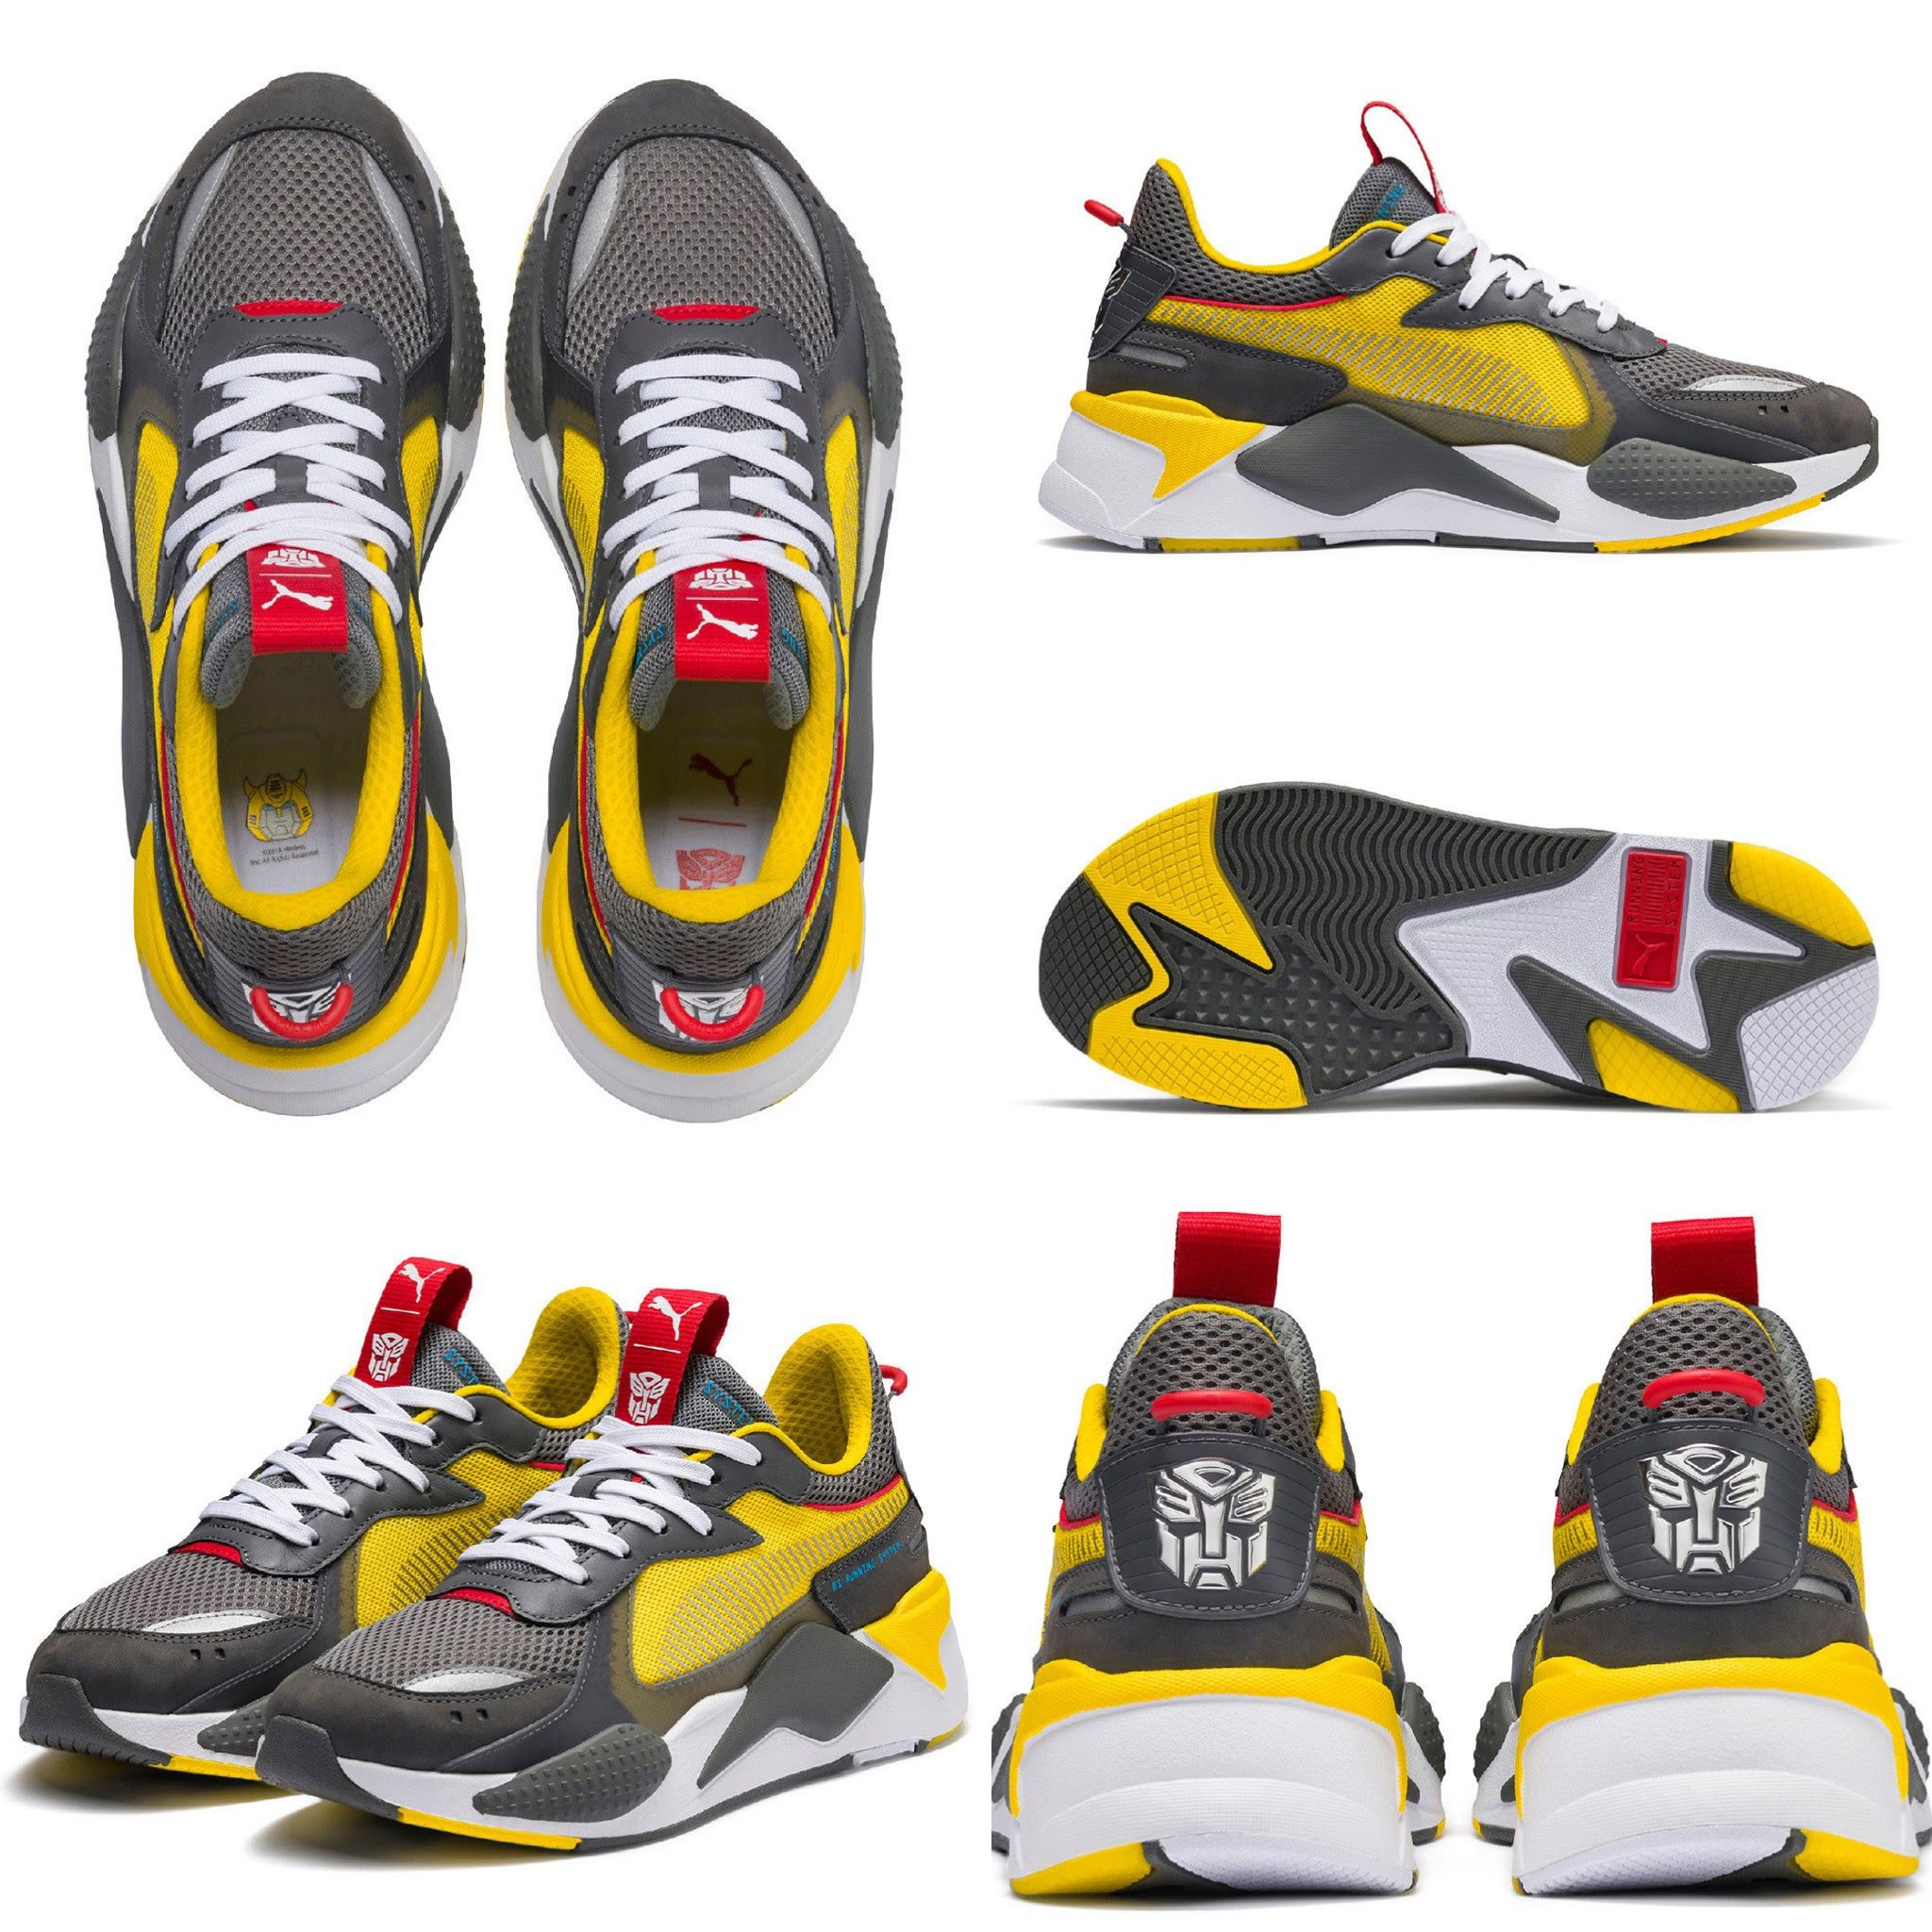 56a48c9df9 Puma x Transformers | SHOE-TACULAR HOMME in 2019 | Shoes, Sneakers ...